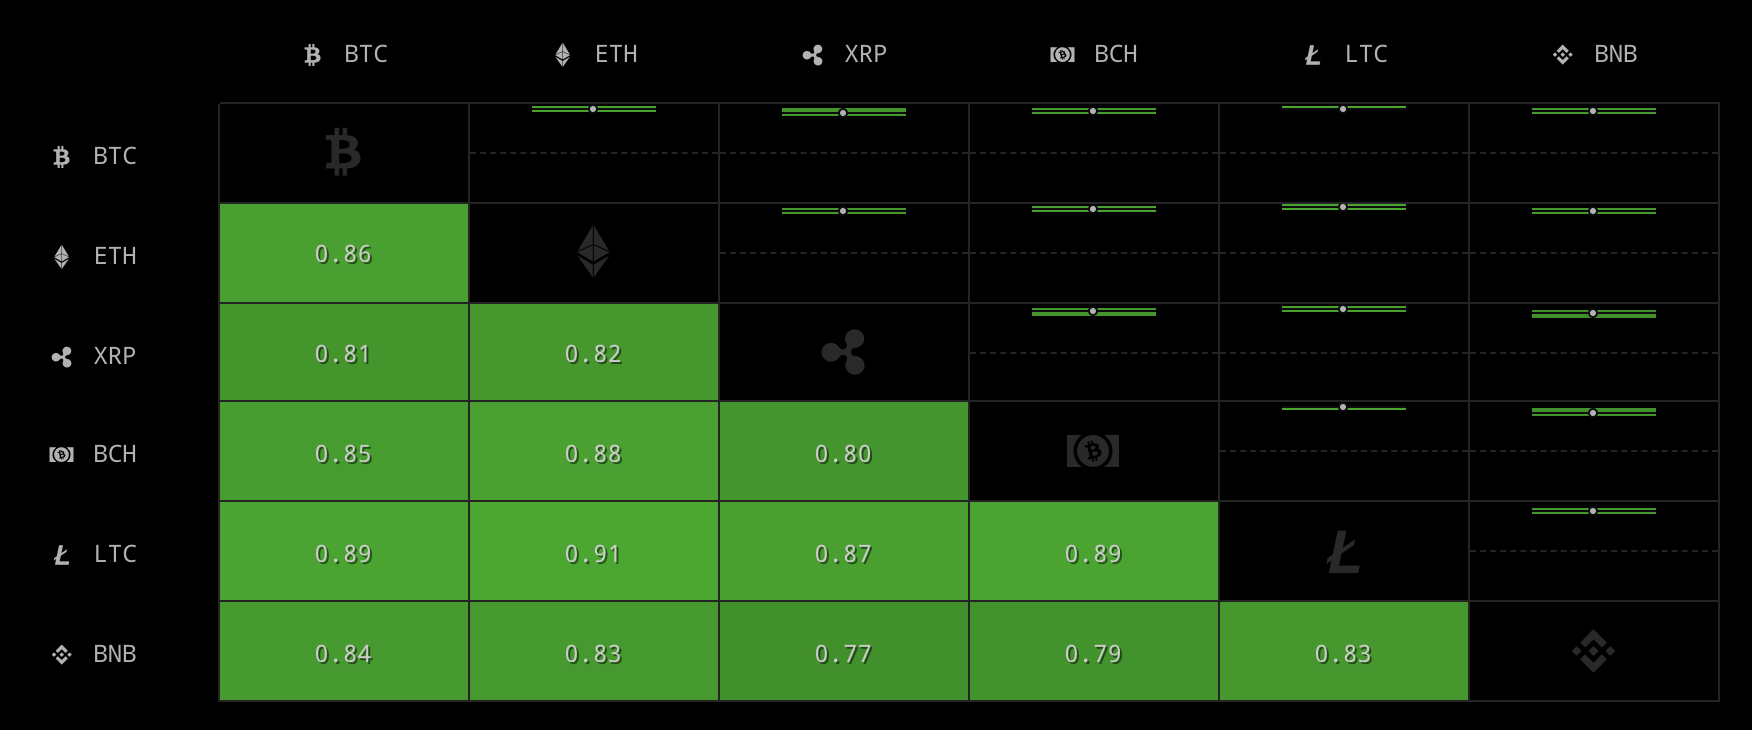 Bitcoin's correlation with the top 5 Cryptocurrencies by CryptoWatch